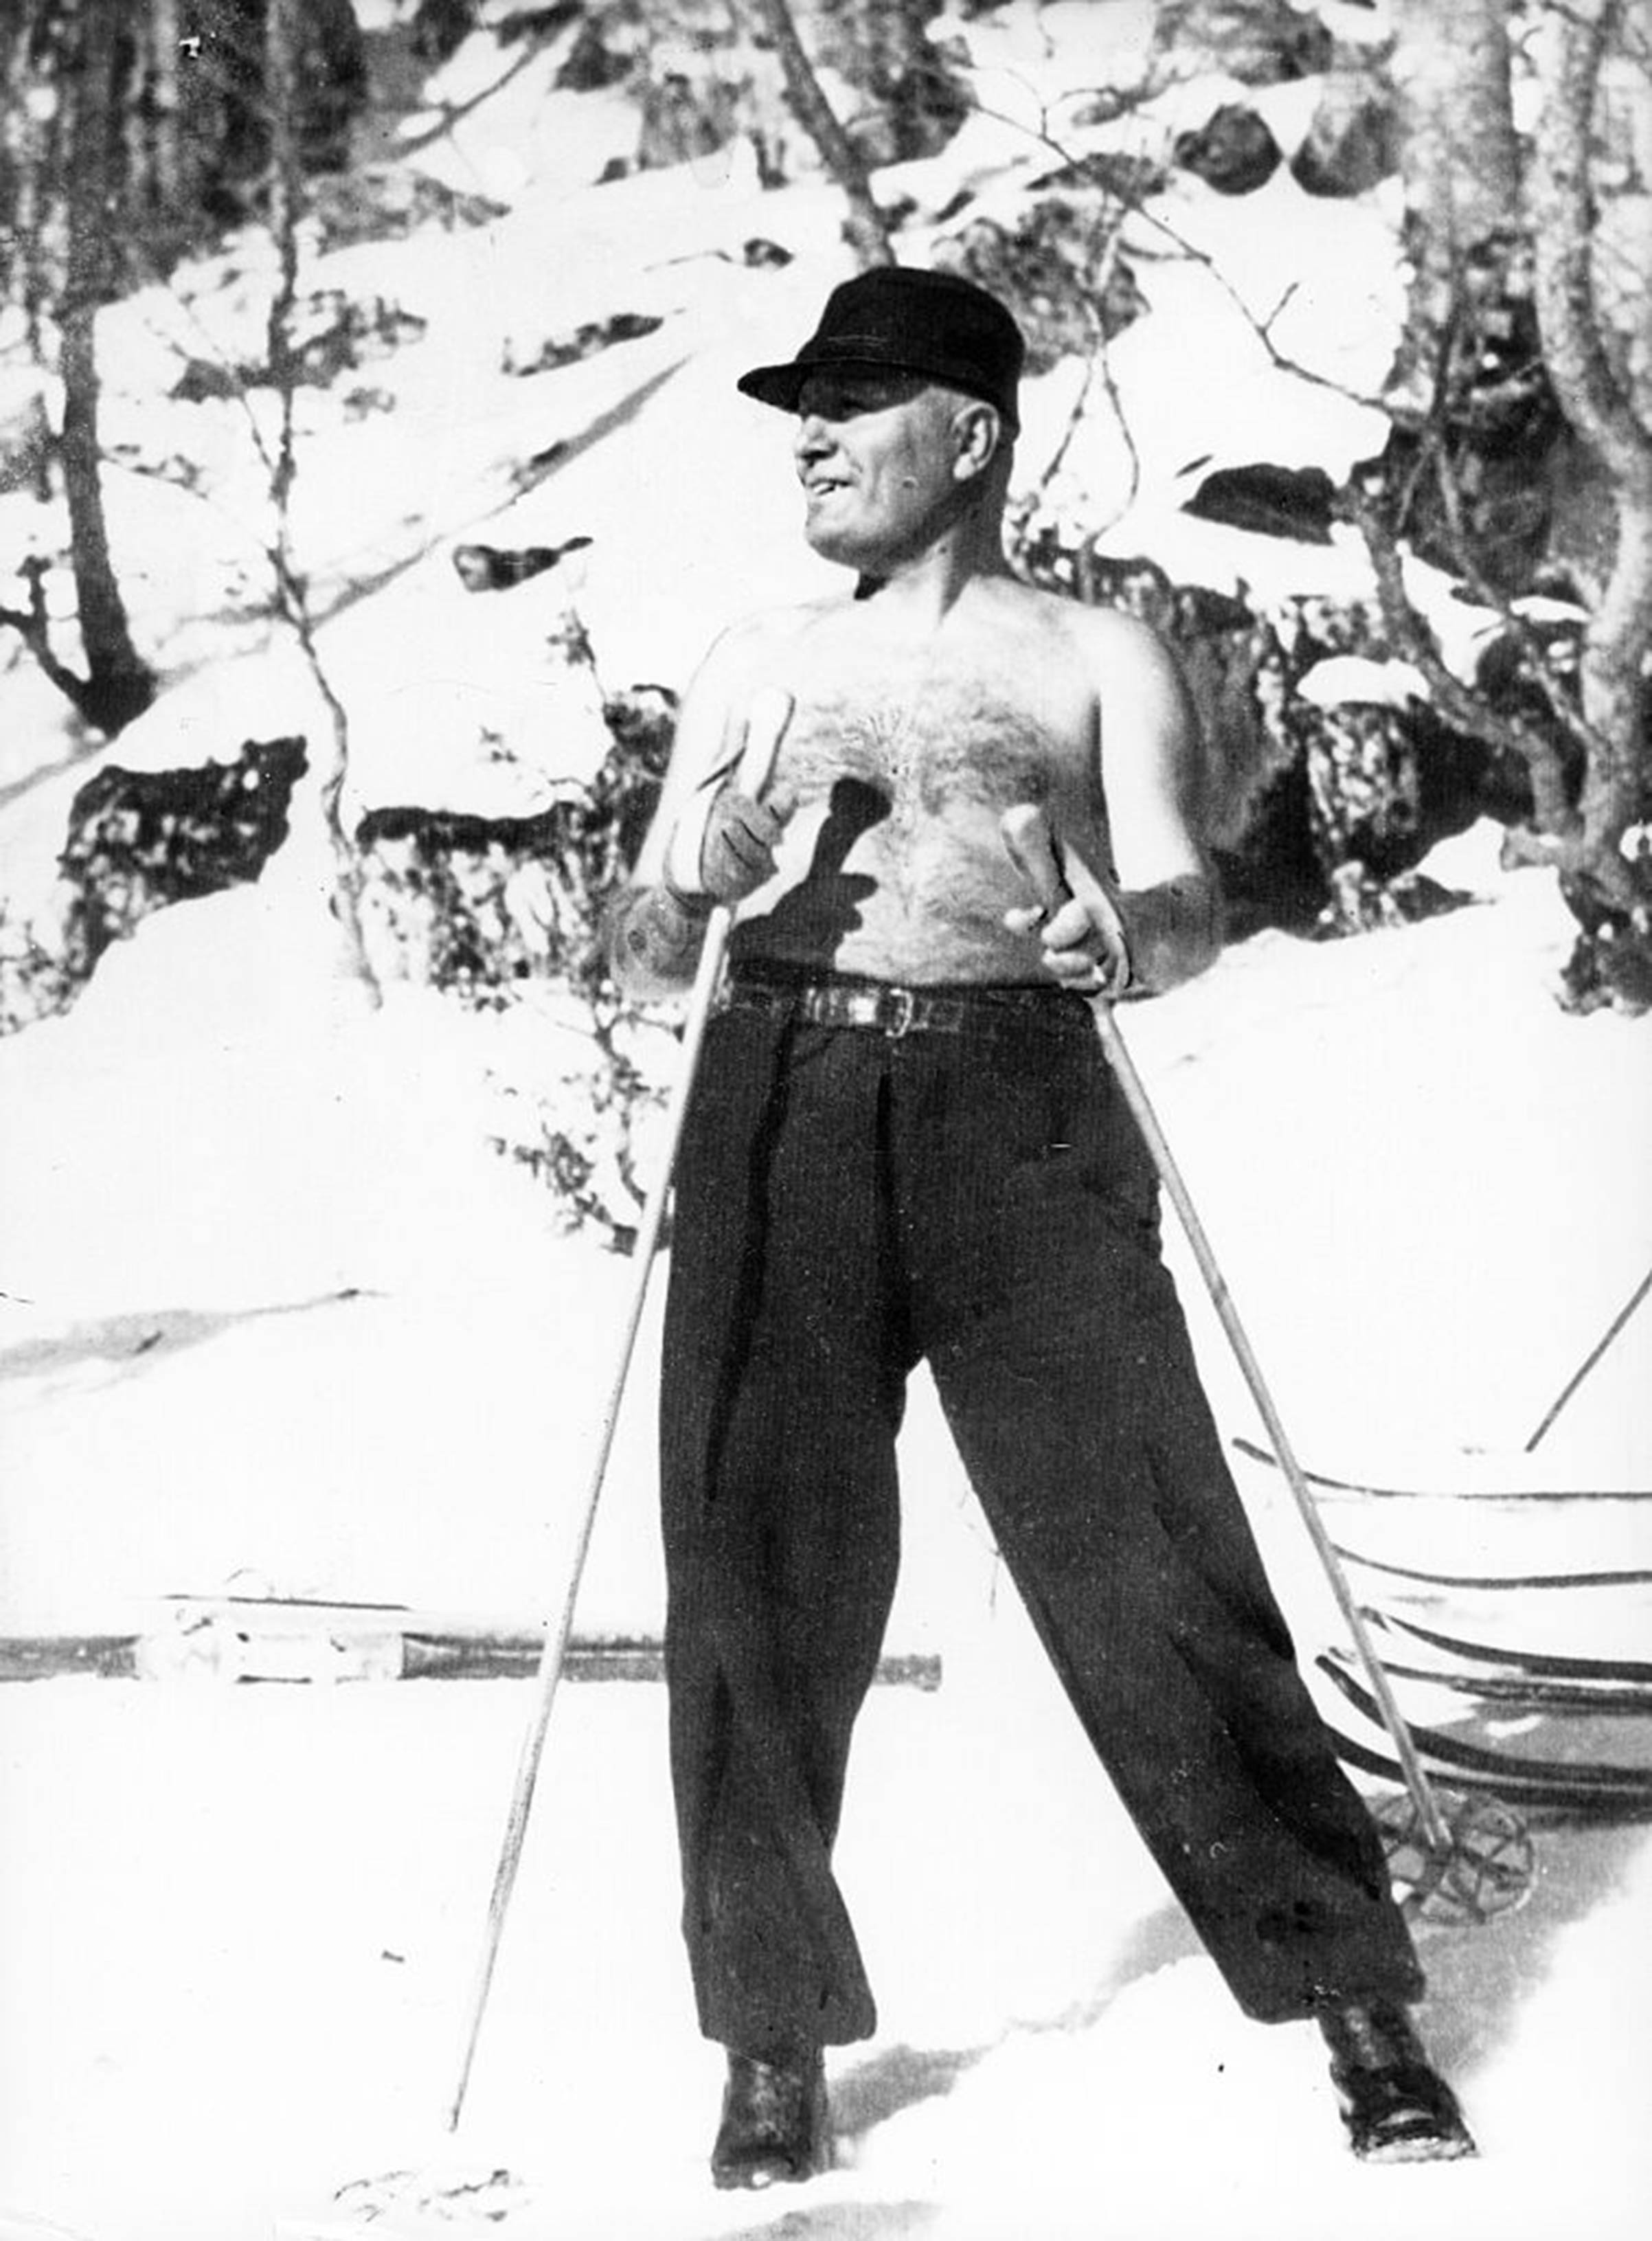 Italian fascist dictator Benito Mussolini strikes a pose while skiing in Italy with his son in 1937.